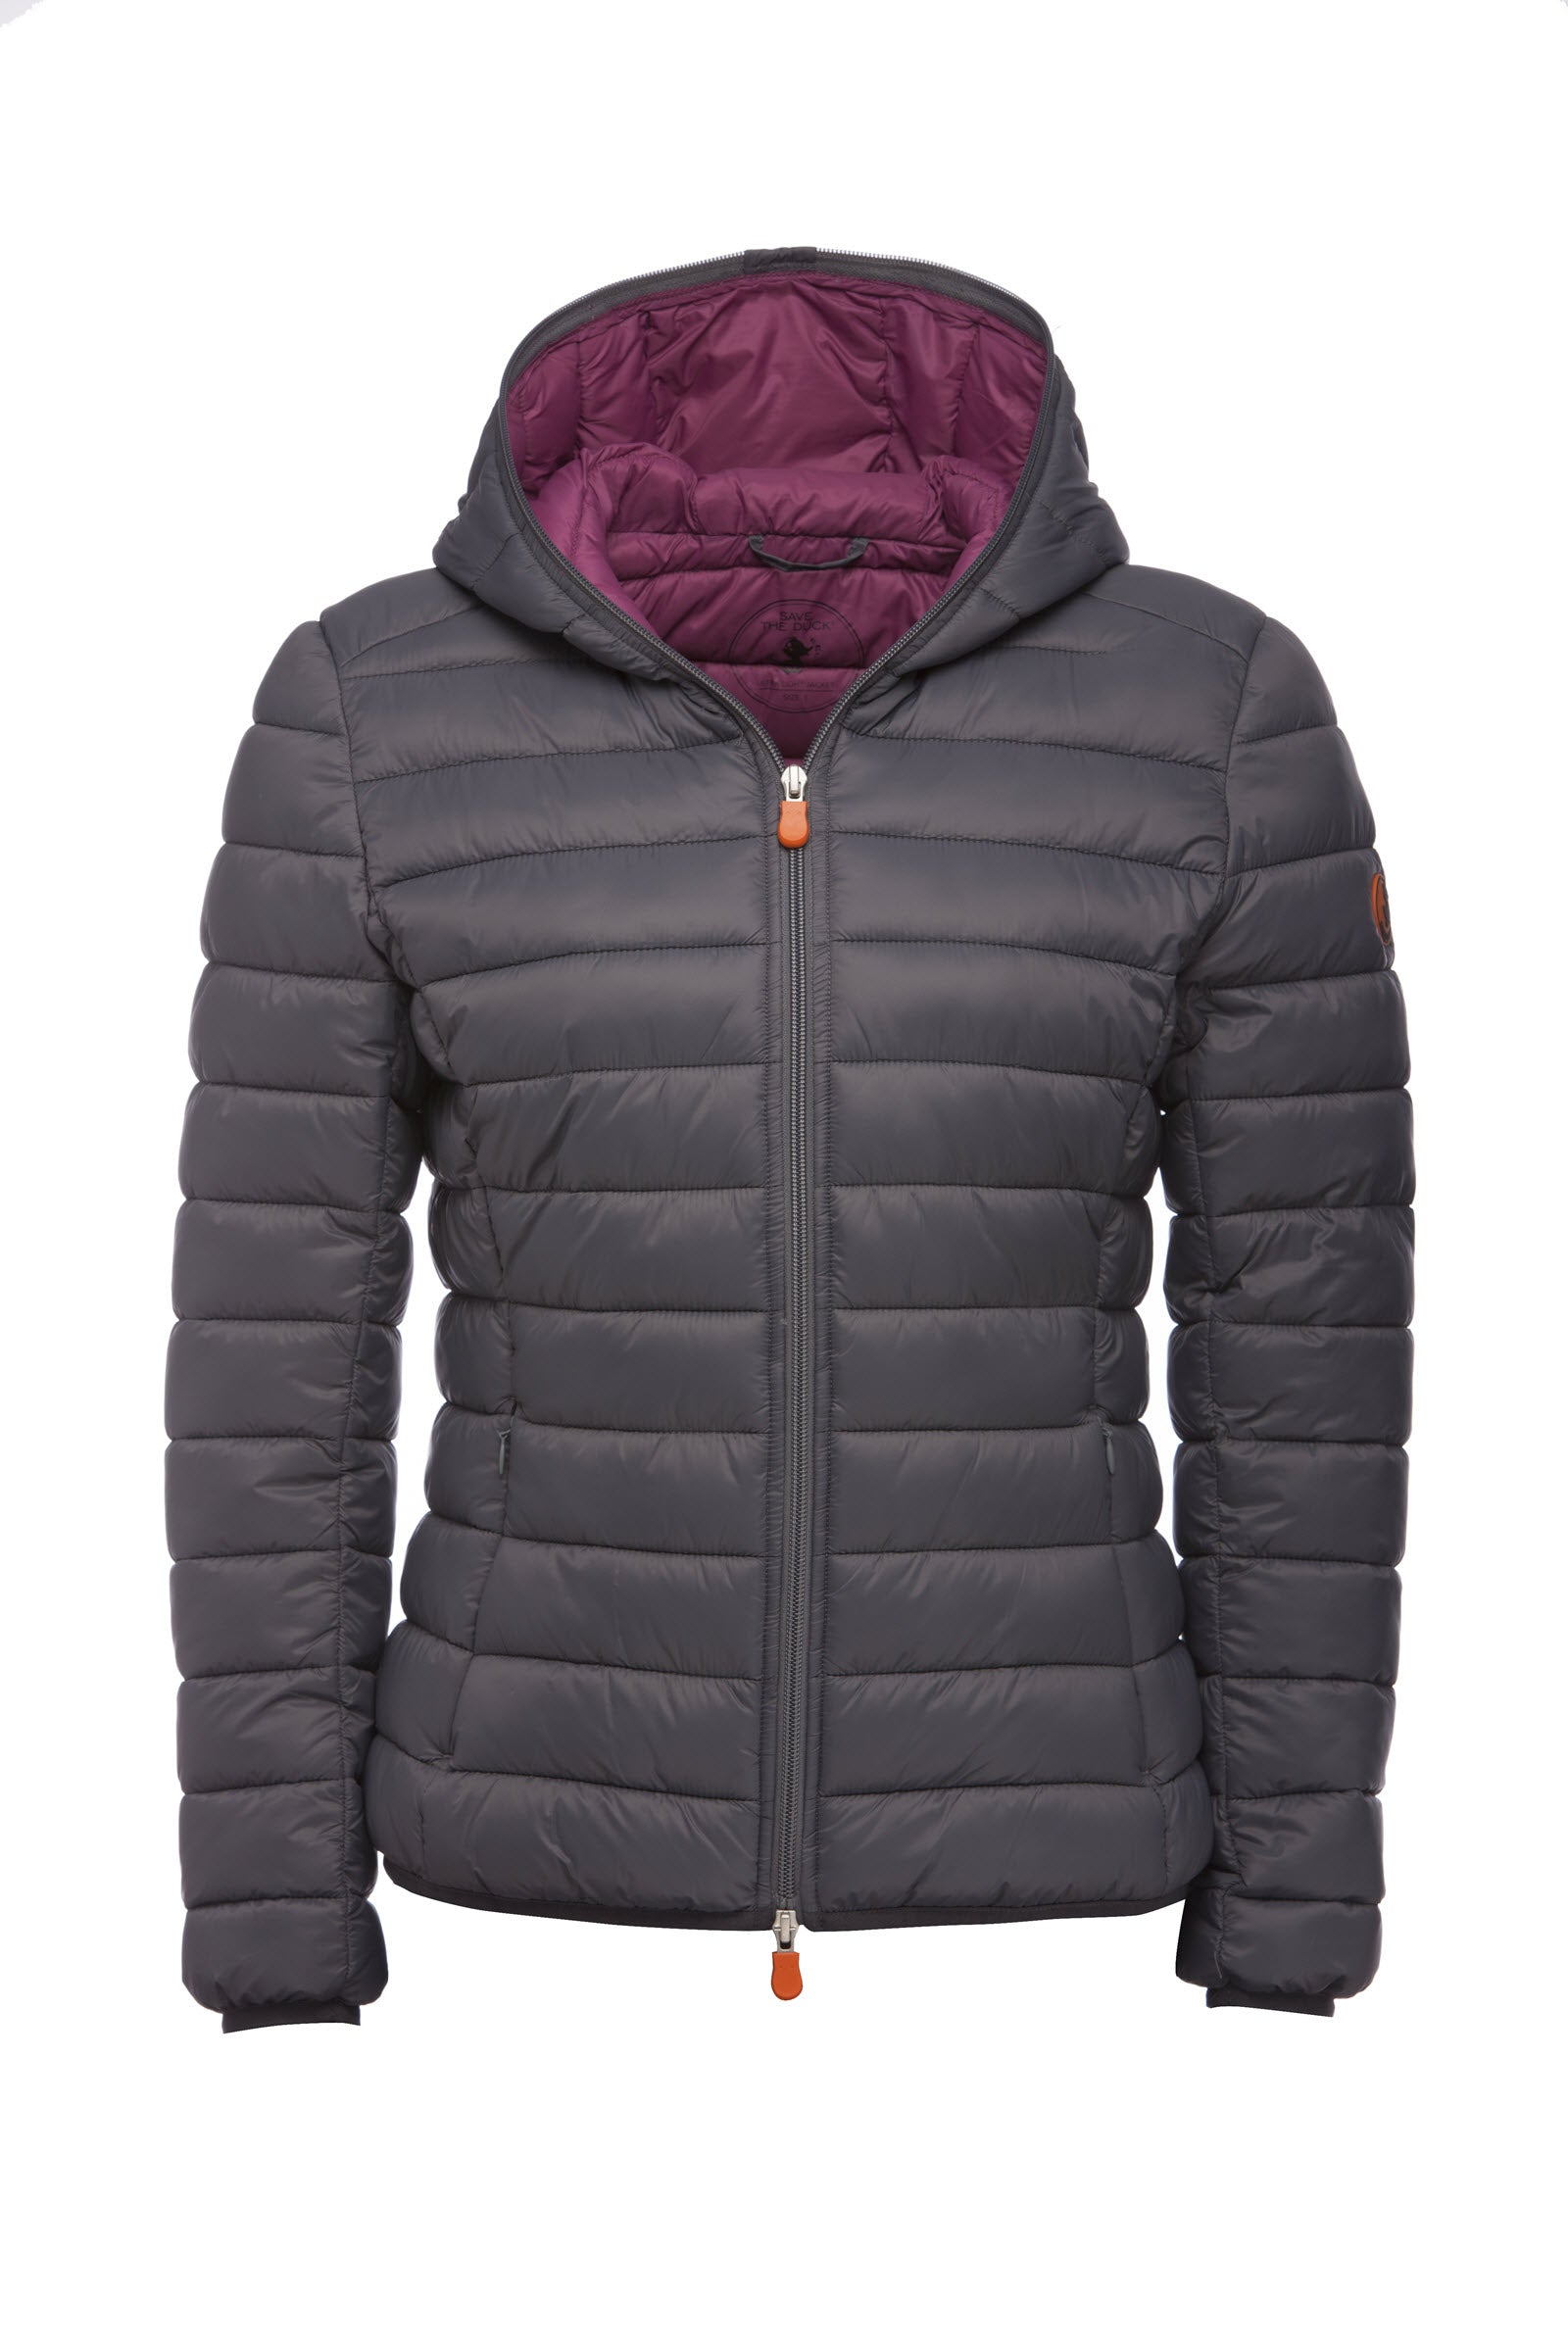 e43433e55e67 Save The Duck Women s Jacket in Charcoal Grey - Save the Duck